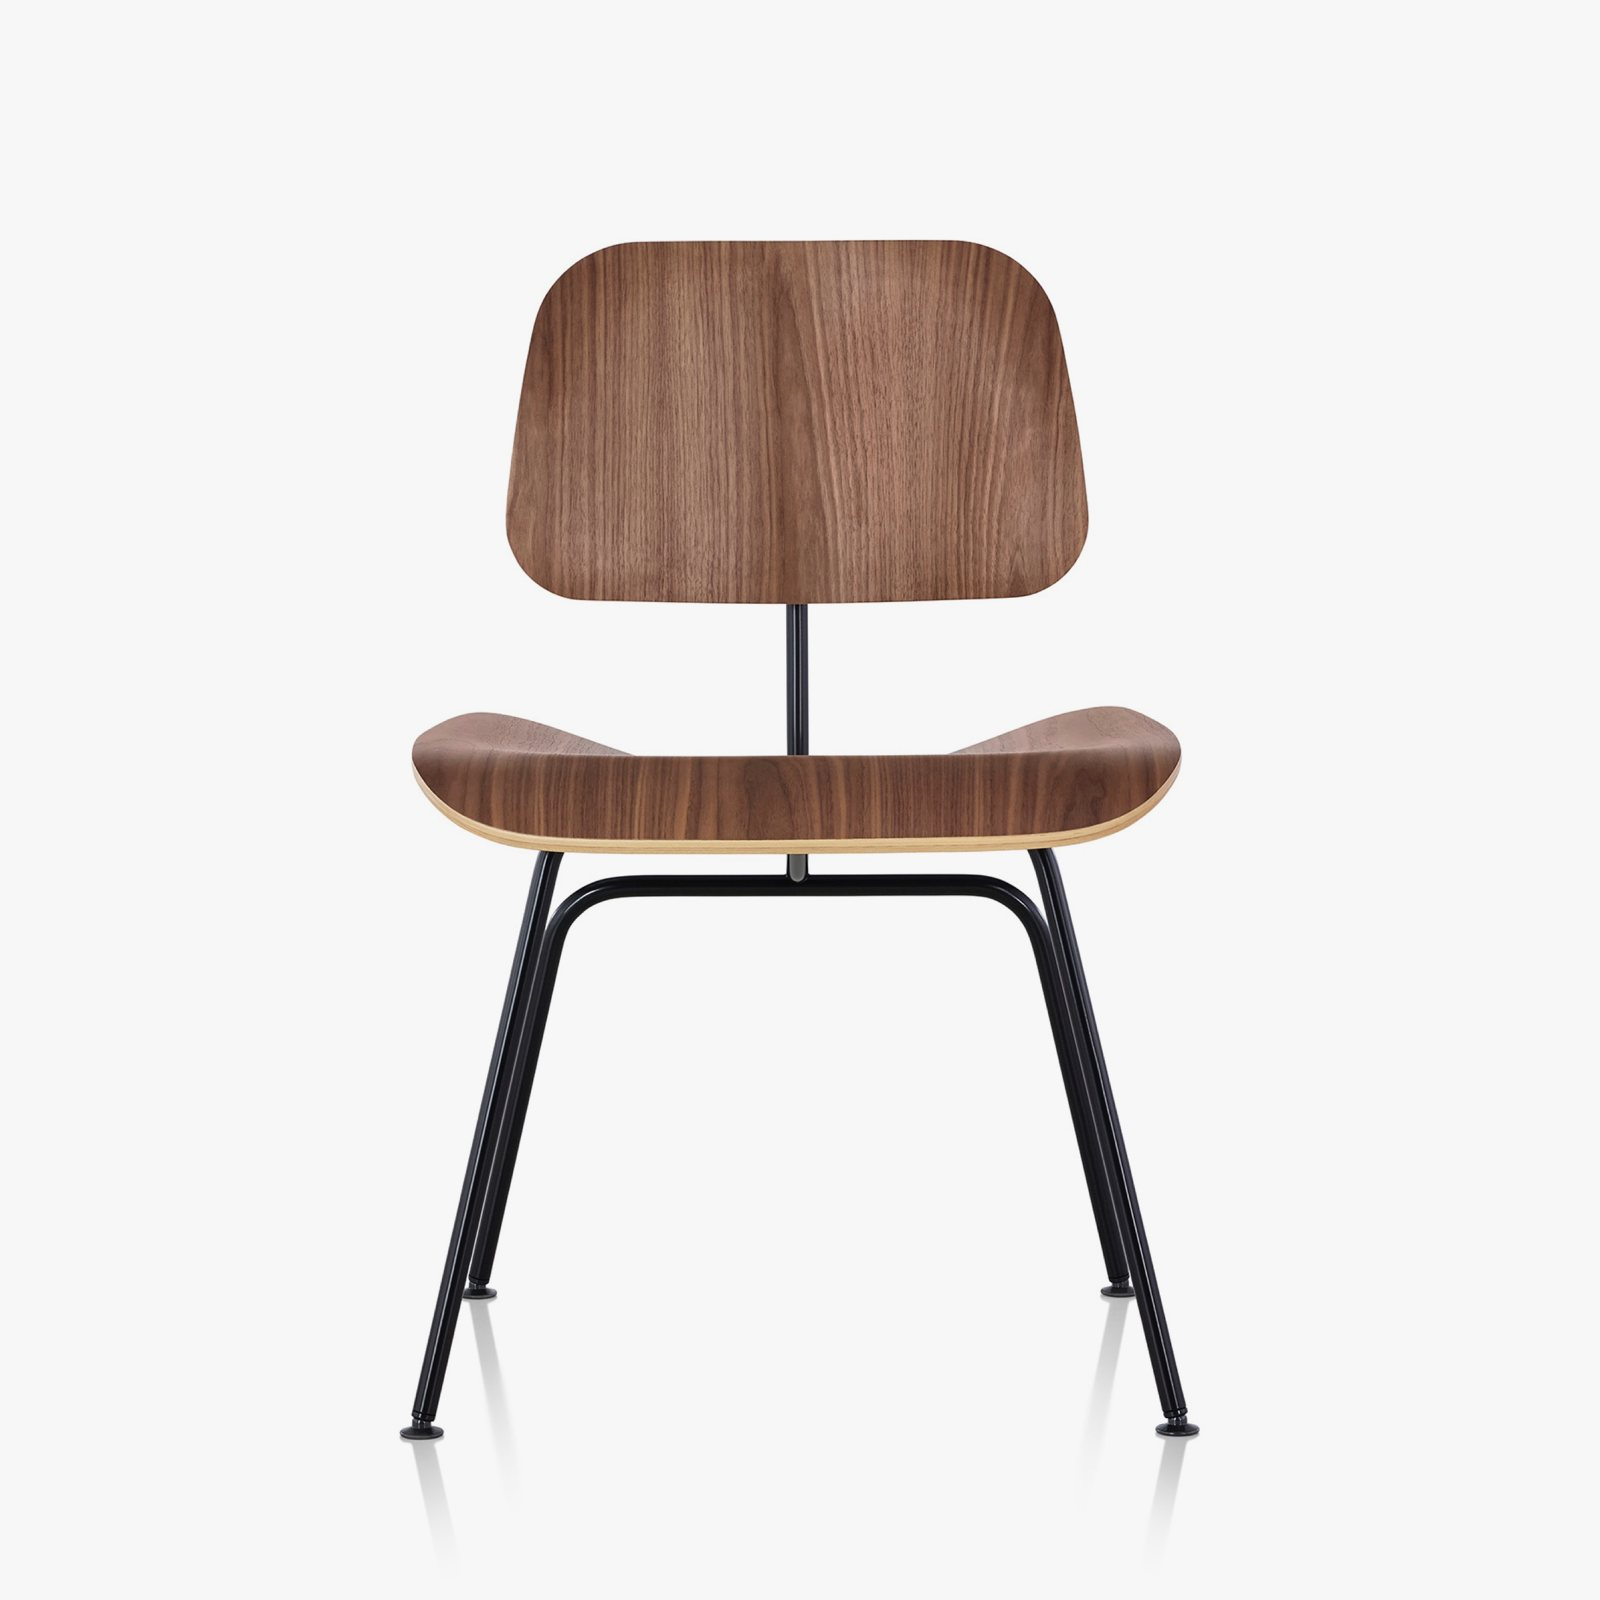 Herman Miller Eames Molded Plywood Dining Chair With Metal Base